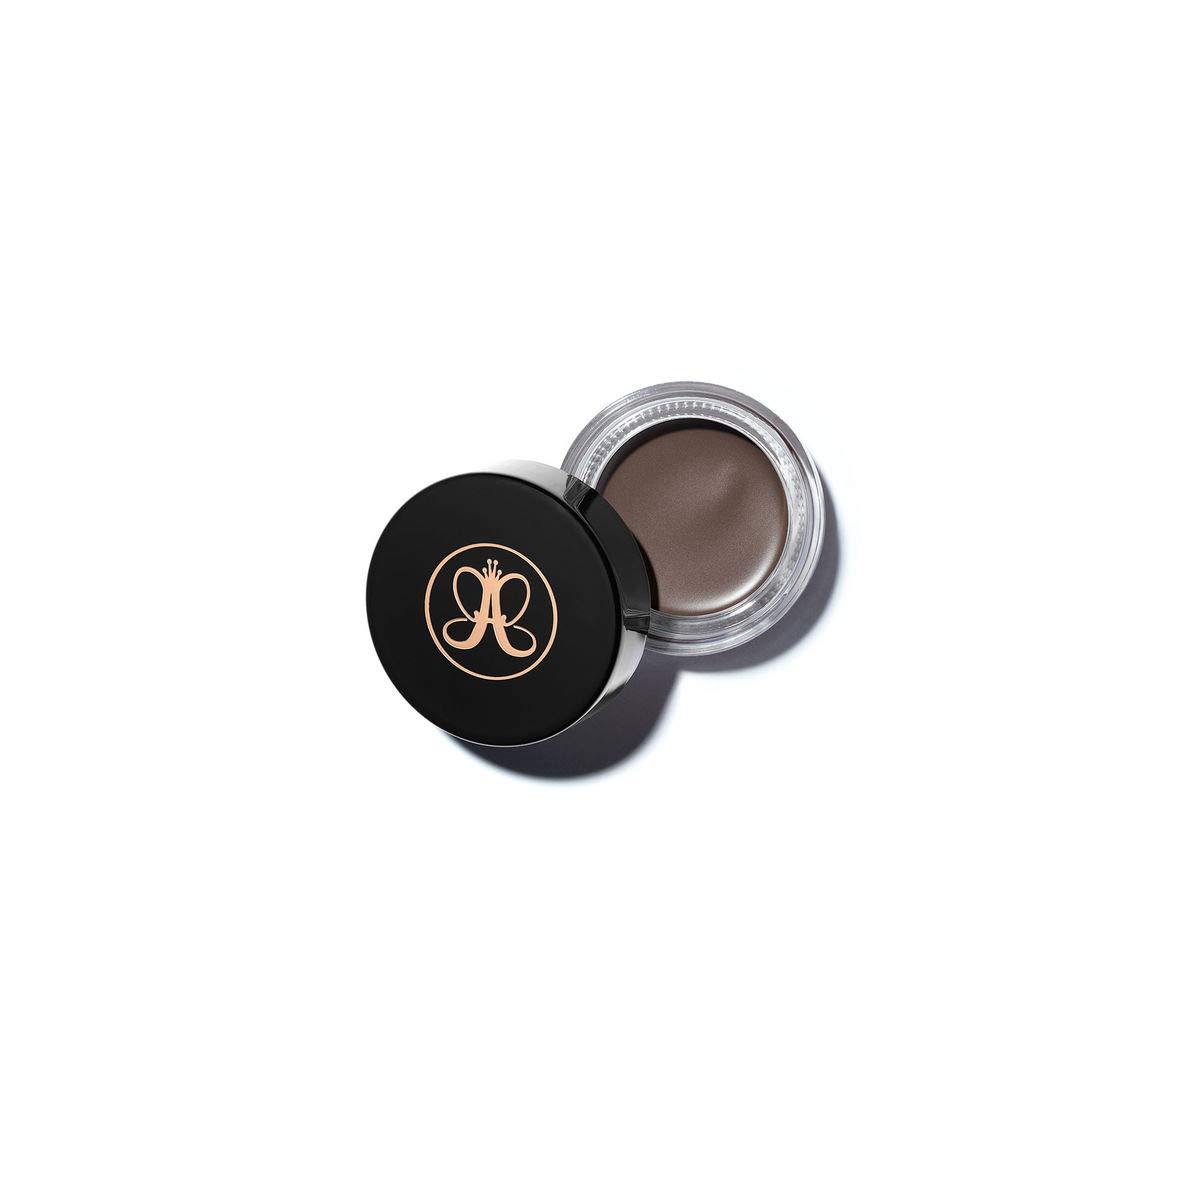 Anastasia Beverly Hills - DIPBROW Pomade - Taupe